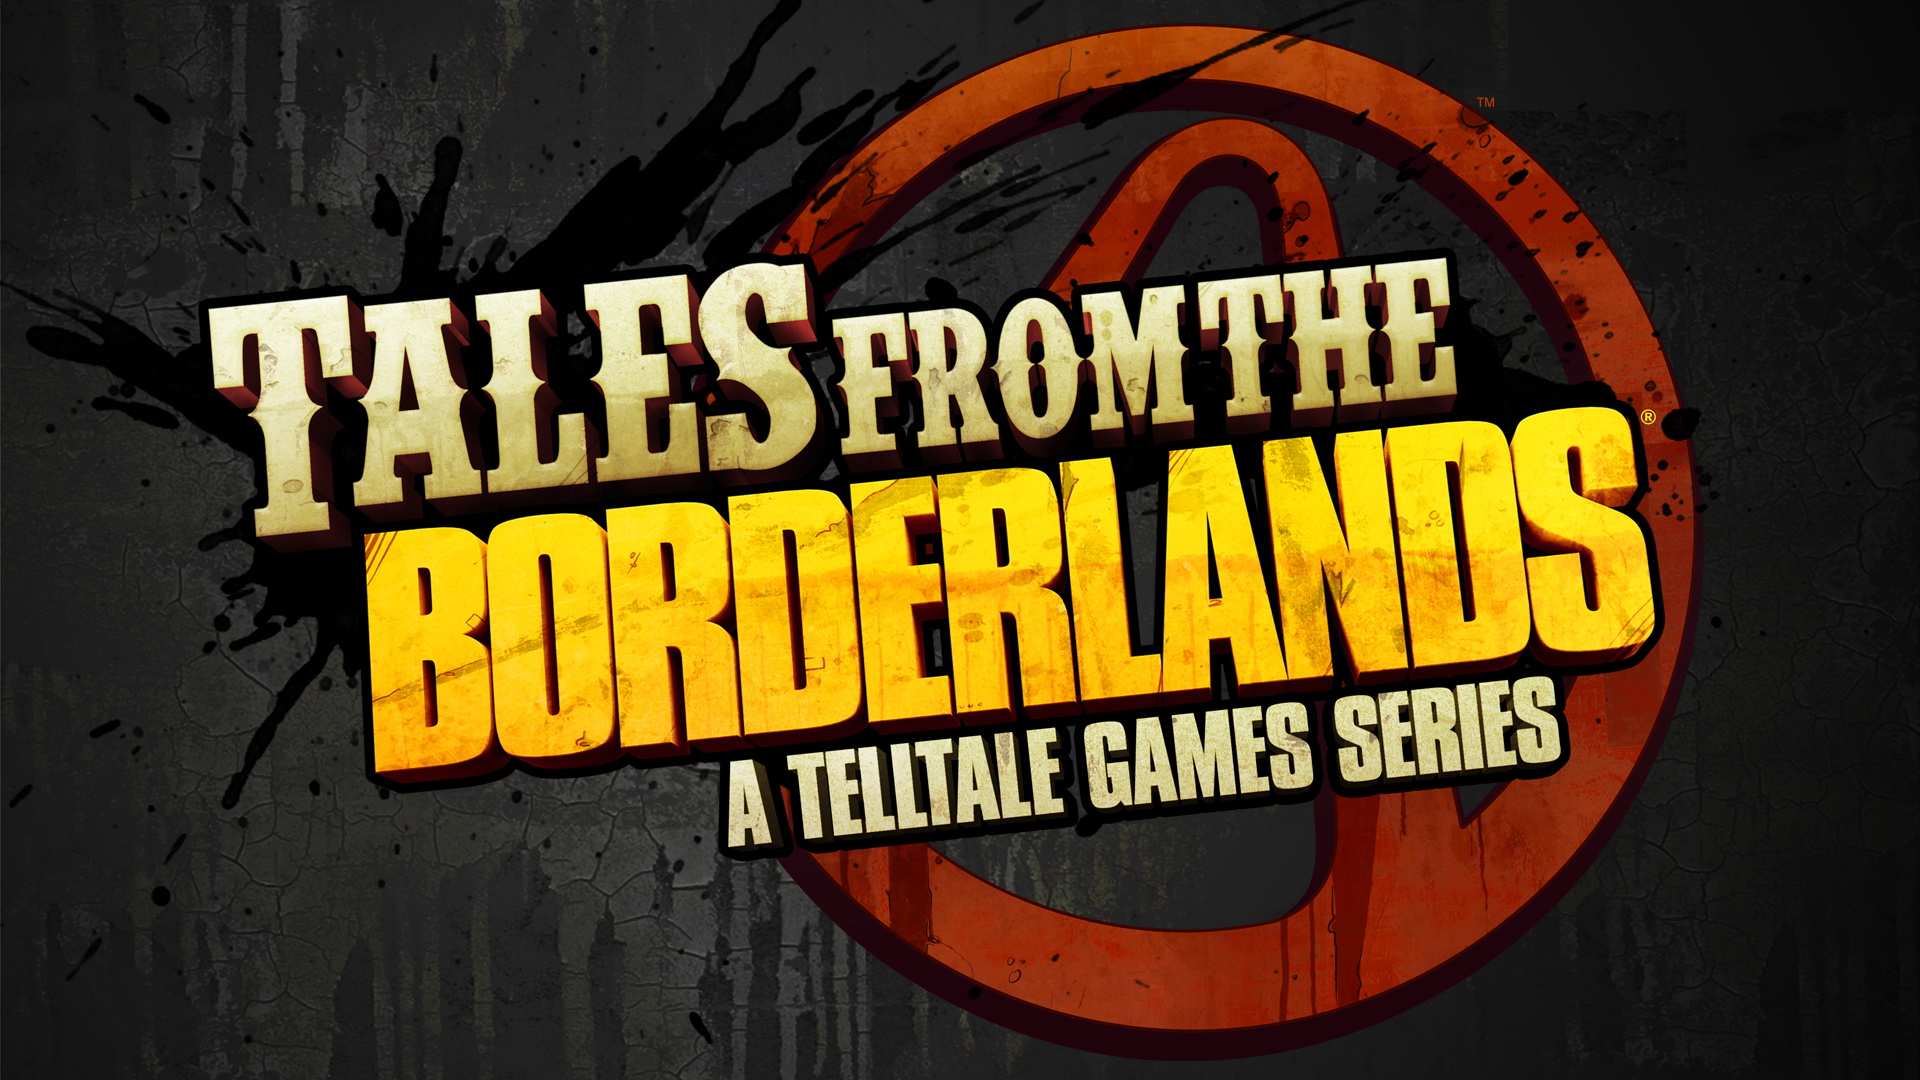 Tales From The Borderlands HQ Wallpapers